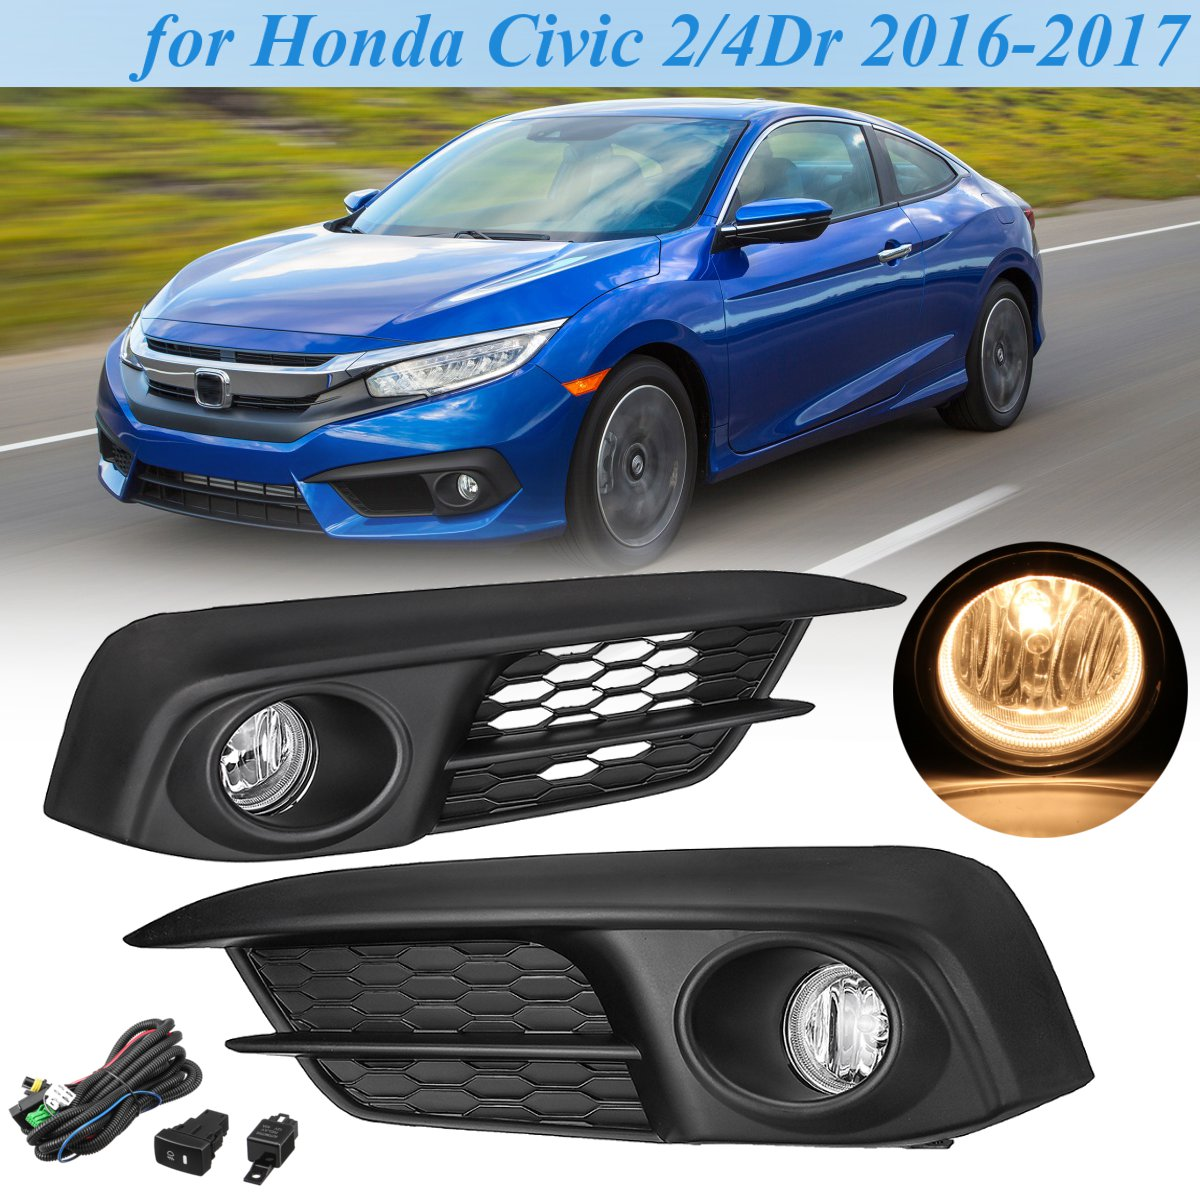 for Honda for Civic 2016 2017 1 Pair Bumper Light Sub-Assy Clear+Wiring Switch+Bulbs Front Bumper Fog Light Lamp Frontfor Honda for Civic 2016 2017 1 Pair Bumper Light Sub-Assy Clear+Wiring Switch+Bulbs Front Bumper Fog Light Lamp Front